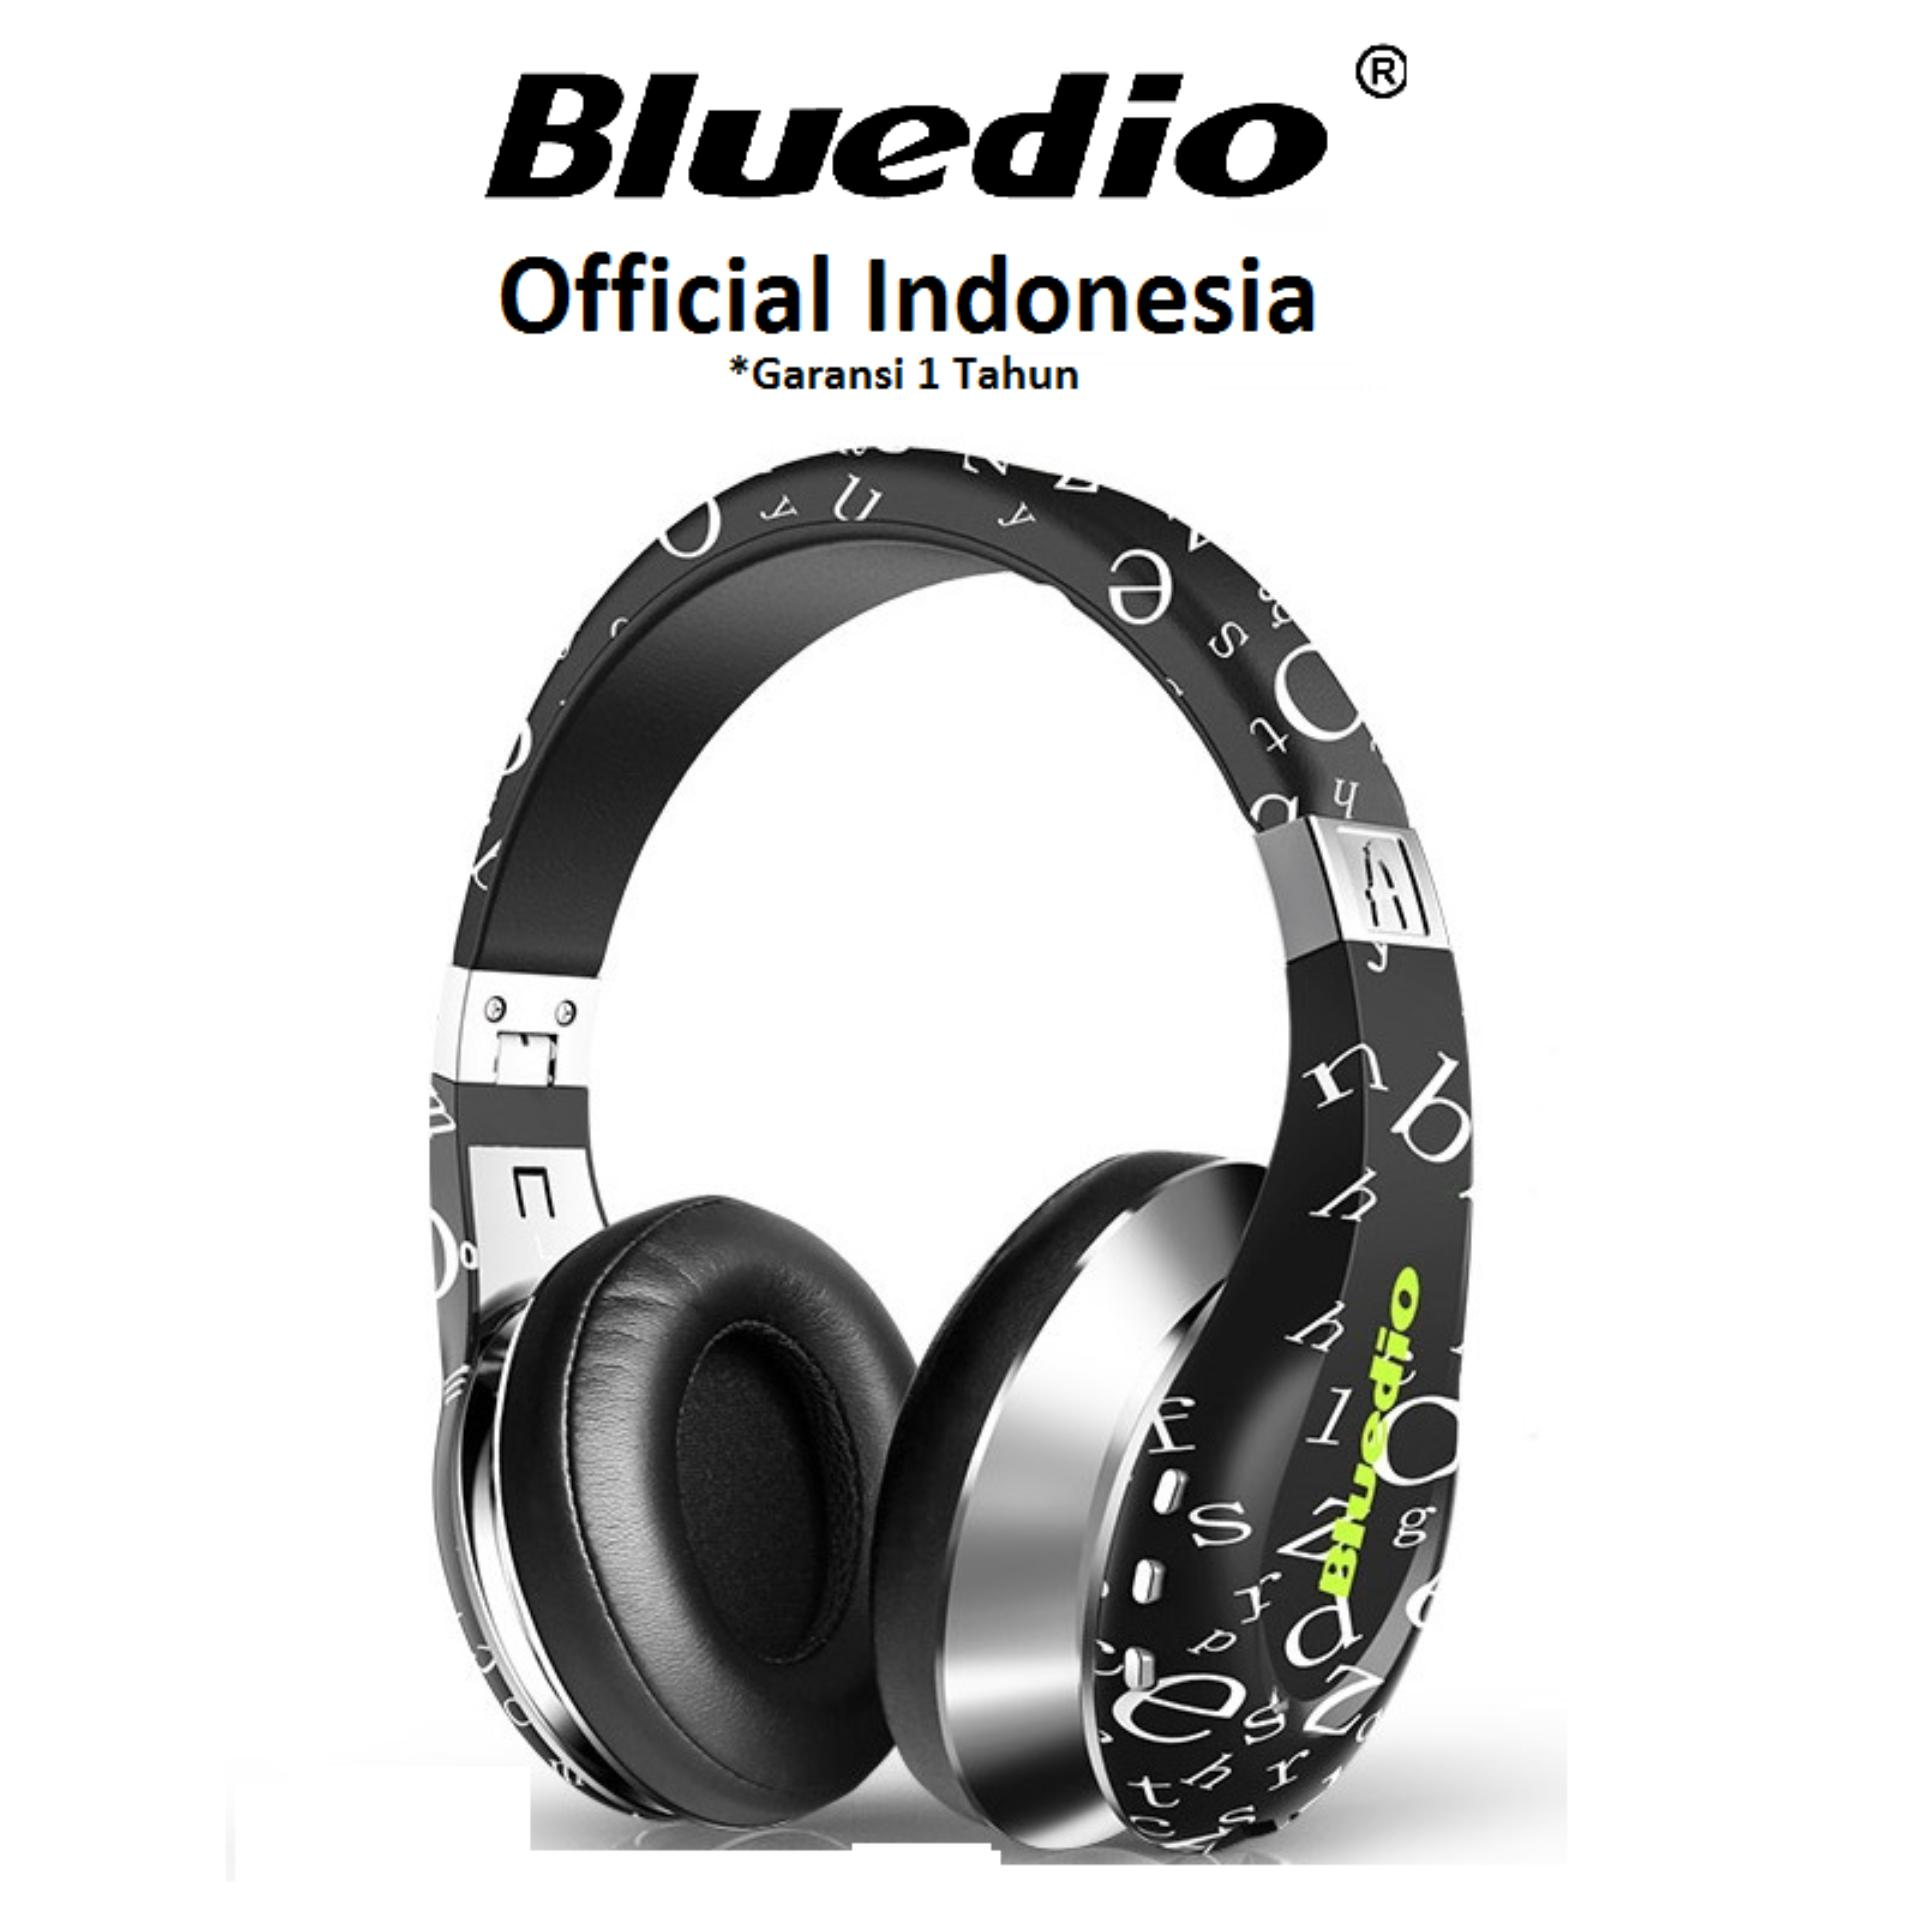 Spesifikasi Bluedio Air A Stylish Wireless Bluetooth Headphones With Mic Hitam Yang Bagus Dan Murah